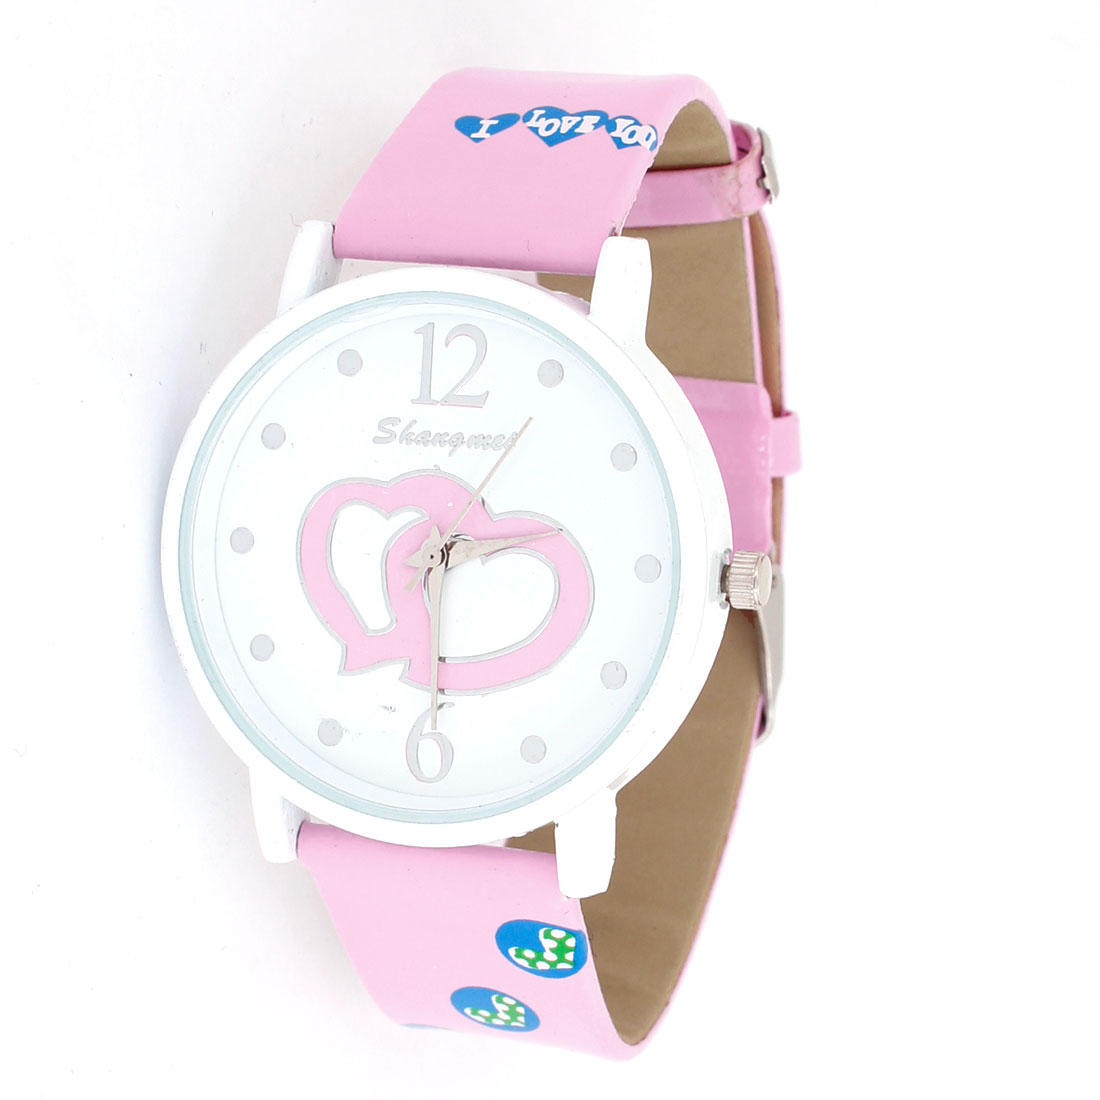 Pink Faux Leather Band Round Wrist Ornament Dial Watch for Lady Girls